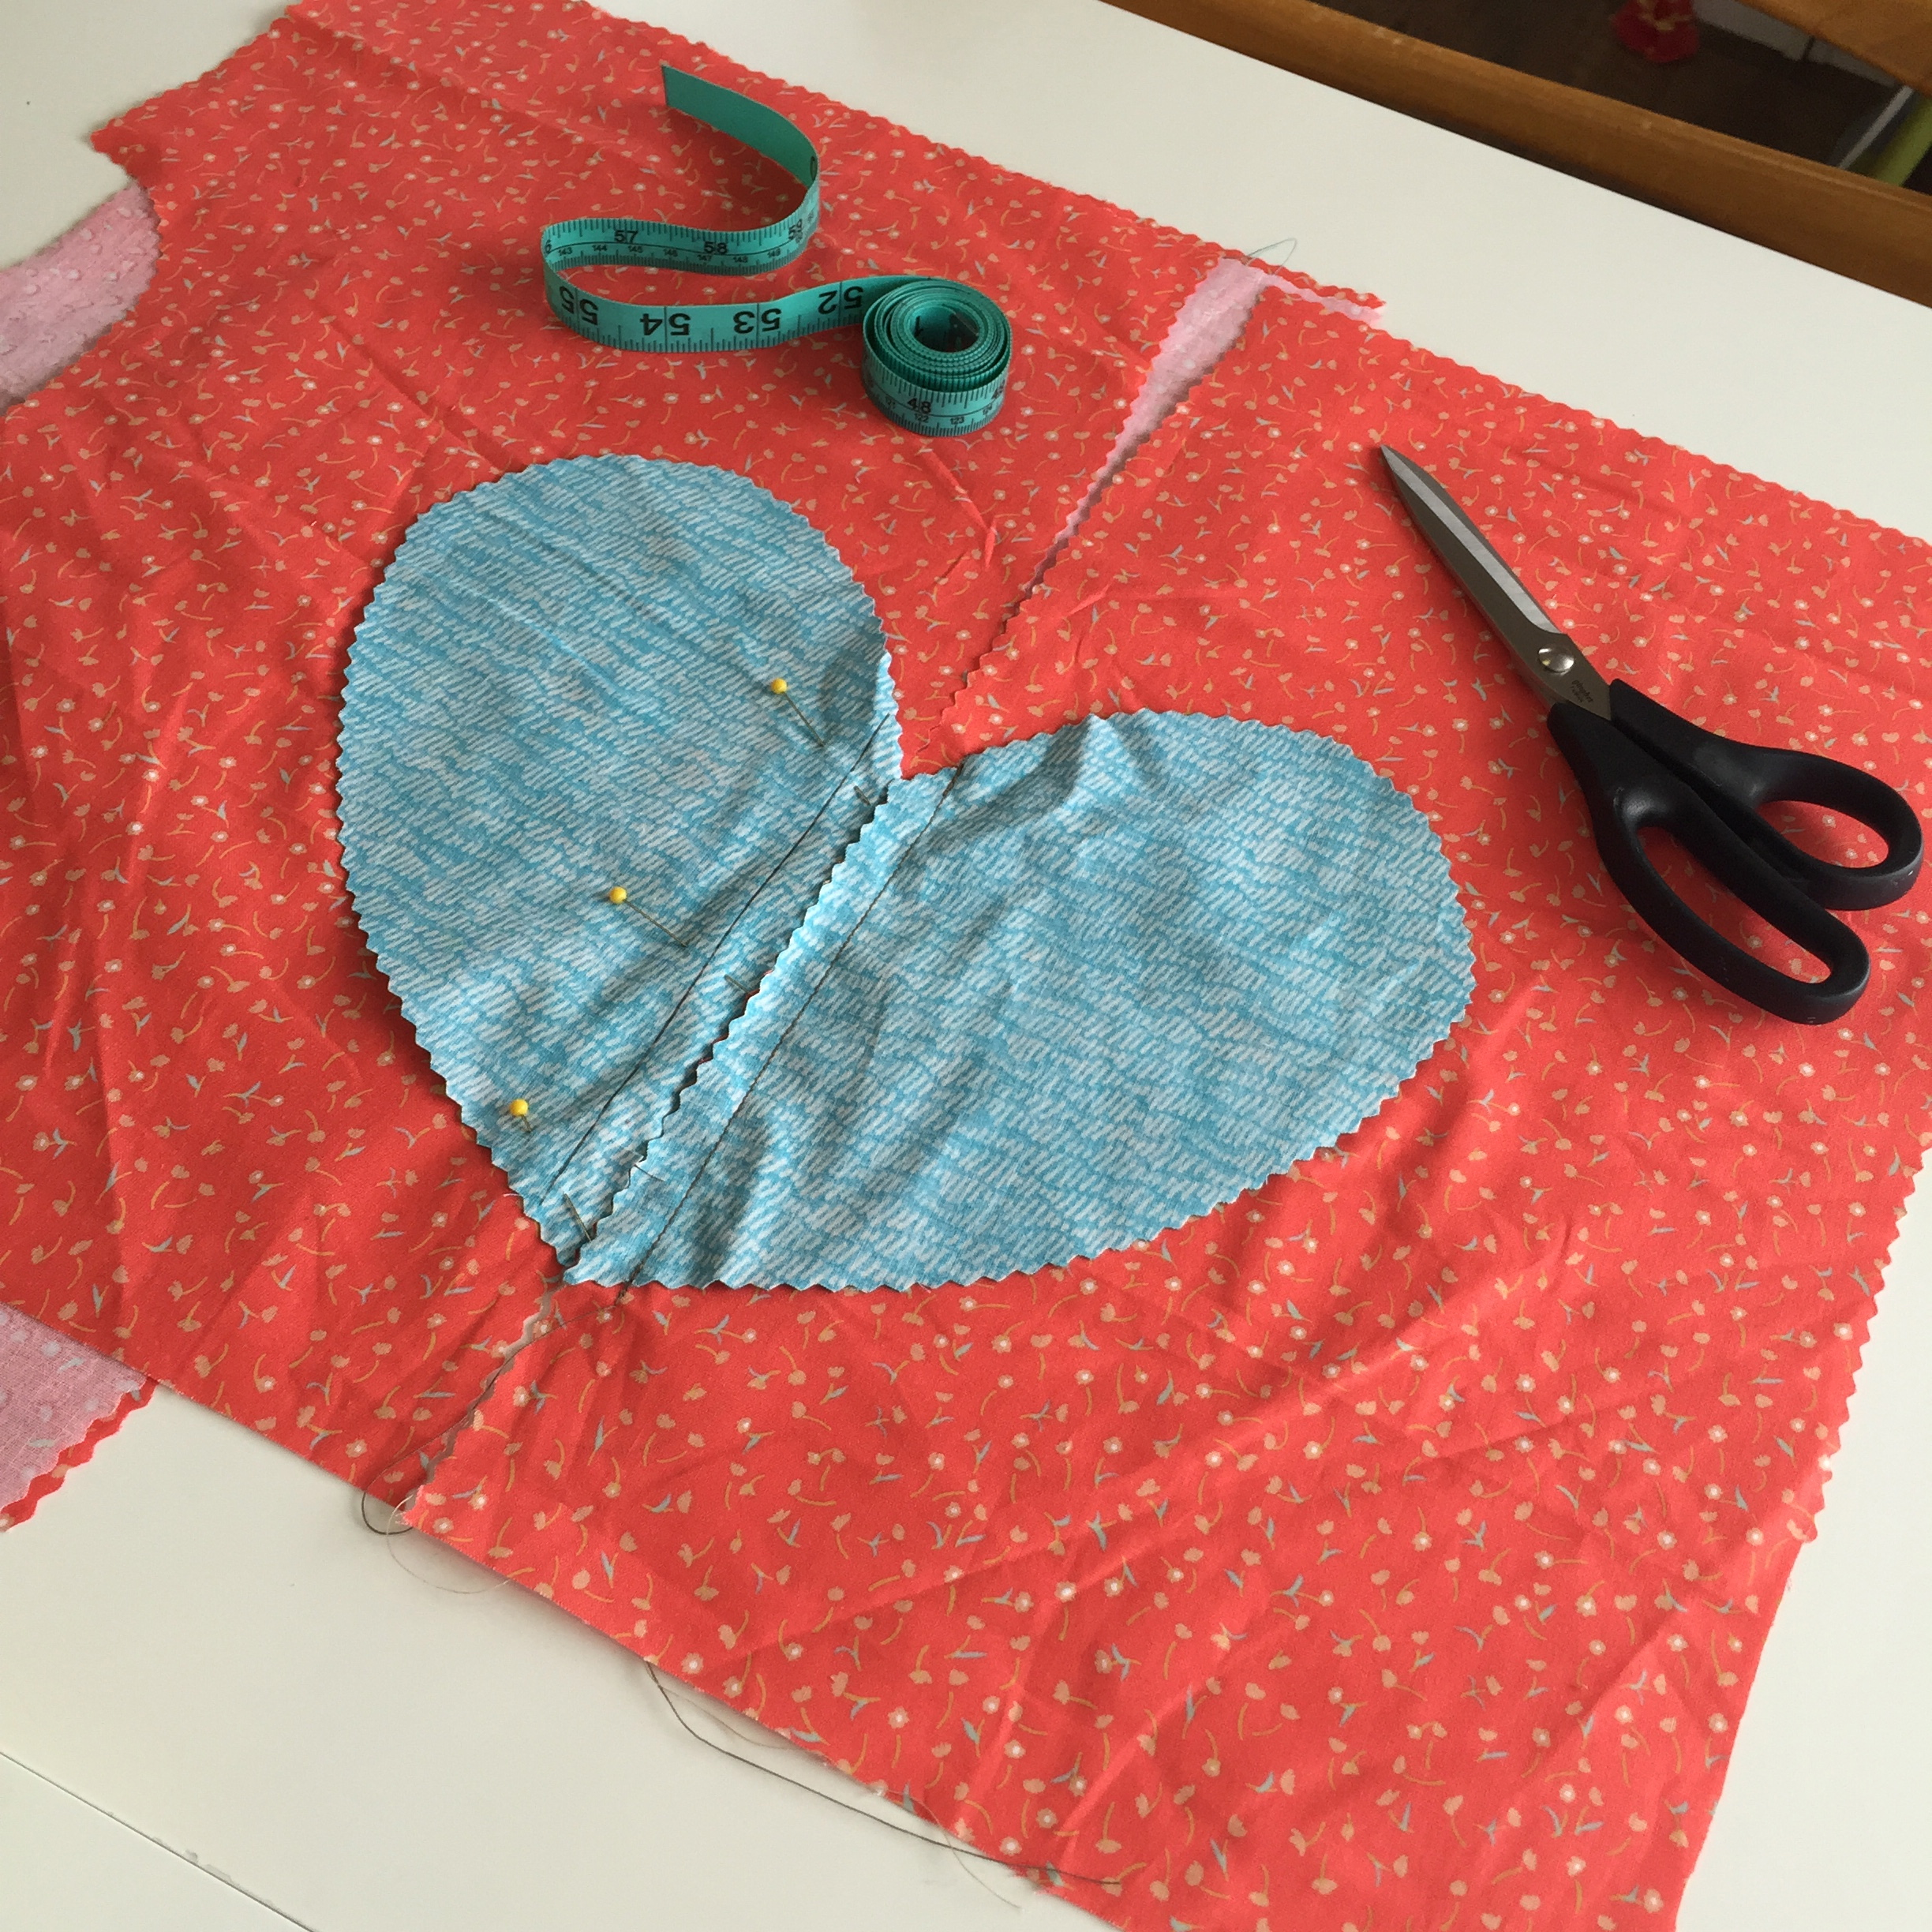 We love to sew at Sew You Studio!